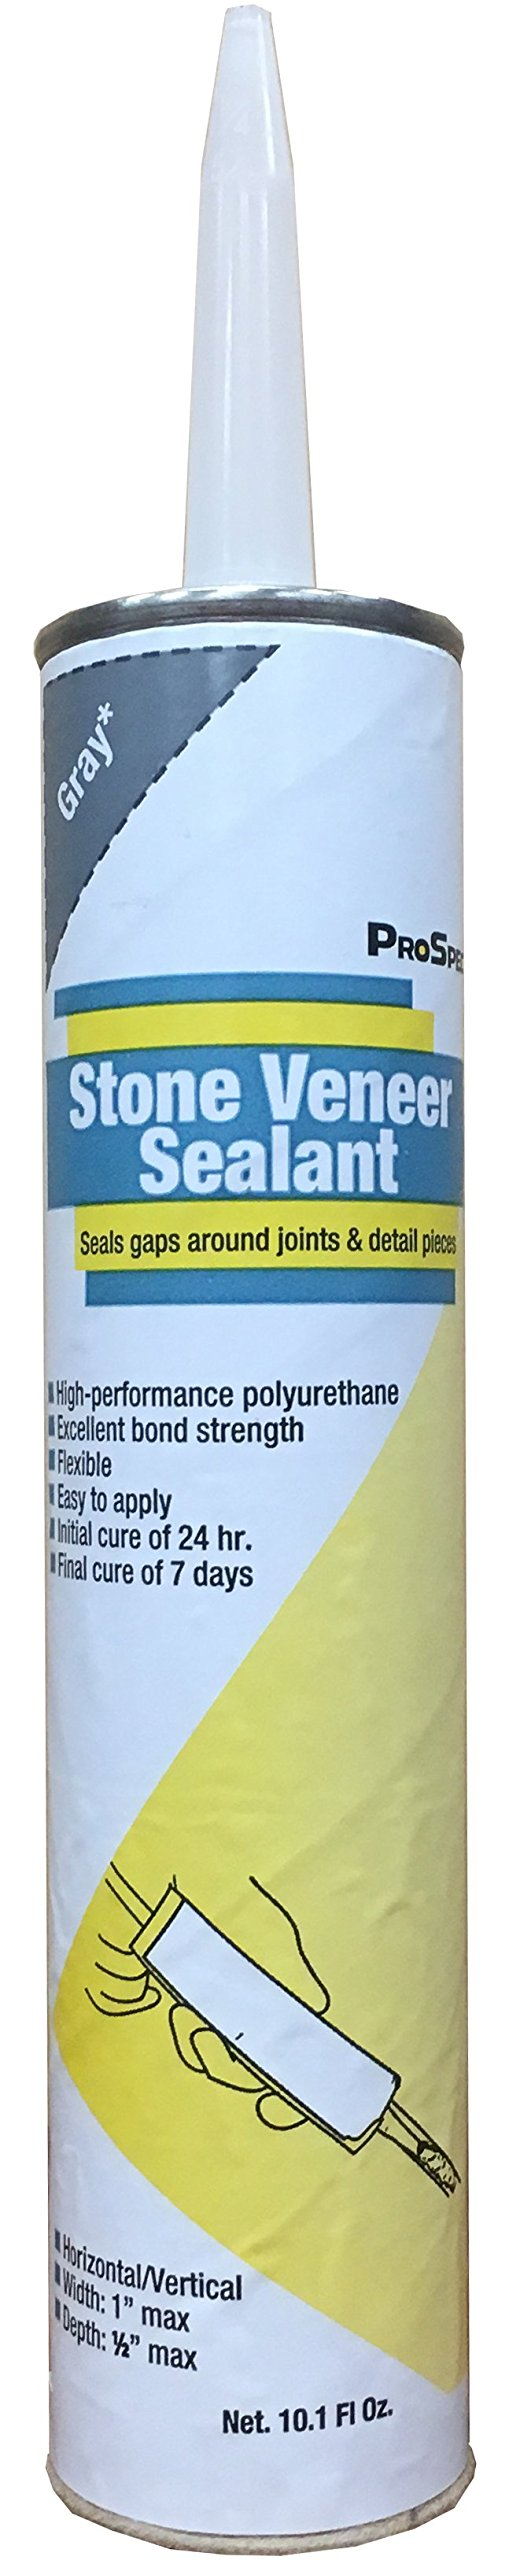 ProSpec Stone Veneer Sealant - Gray - 10.1 oz. (1 Pack) by ProSpec